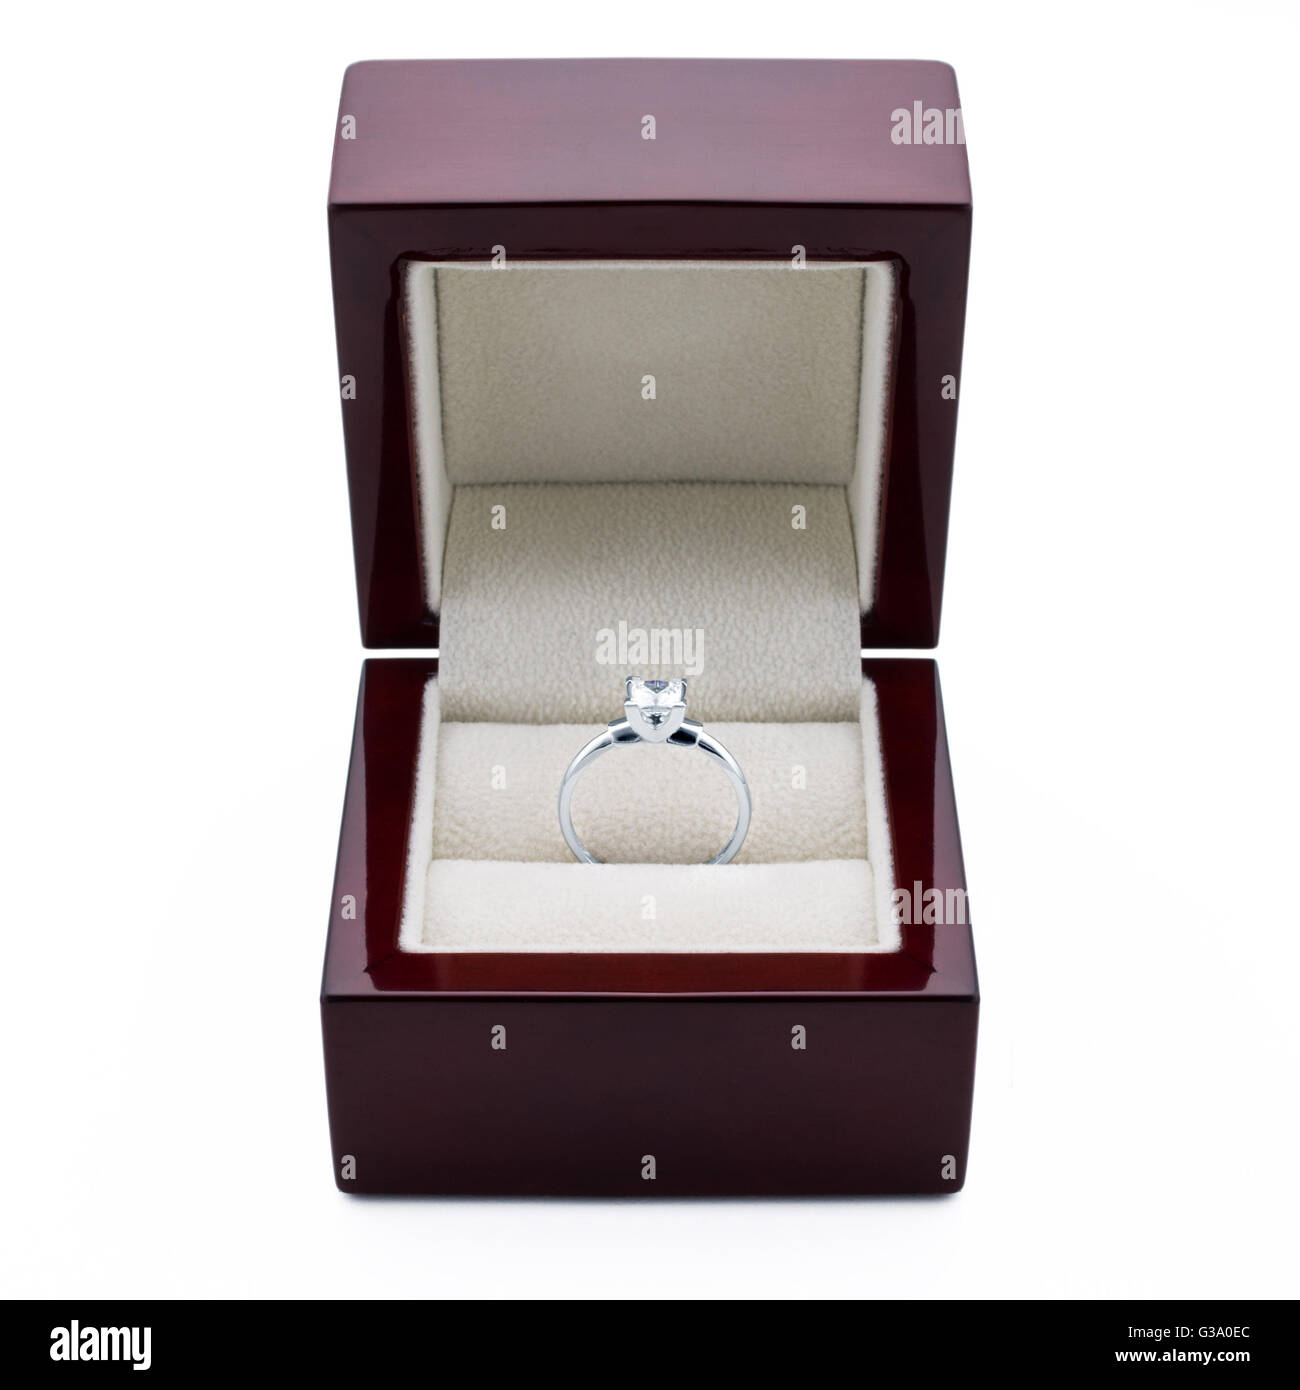 An engagement ring made of white gold with diamonds in a elegant box. - Stock Image